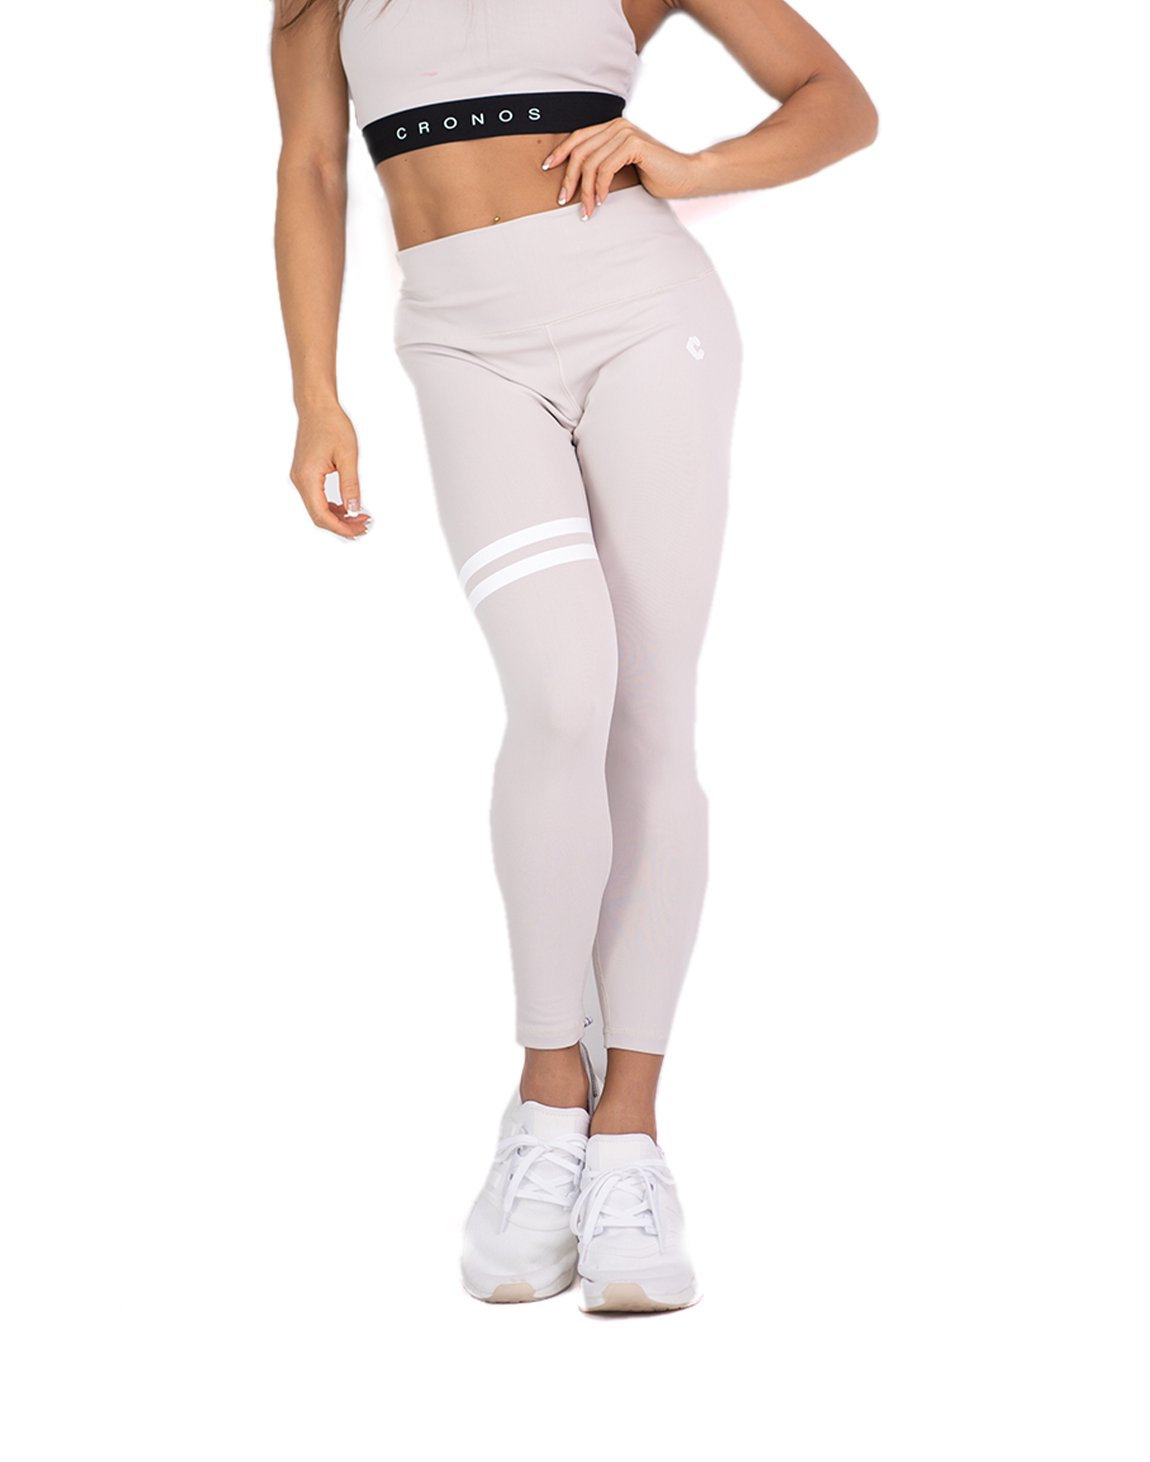 <img class='new_mark_img1' src='https://img.shop-pro.jp/img/new/icons1.gif' style='border:none;display:inline;margin:0px;padding:0px;width:auto;' />CRONOS 2LINE LEGGINS  GRAY